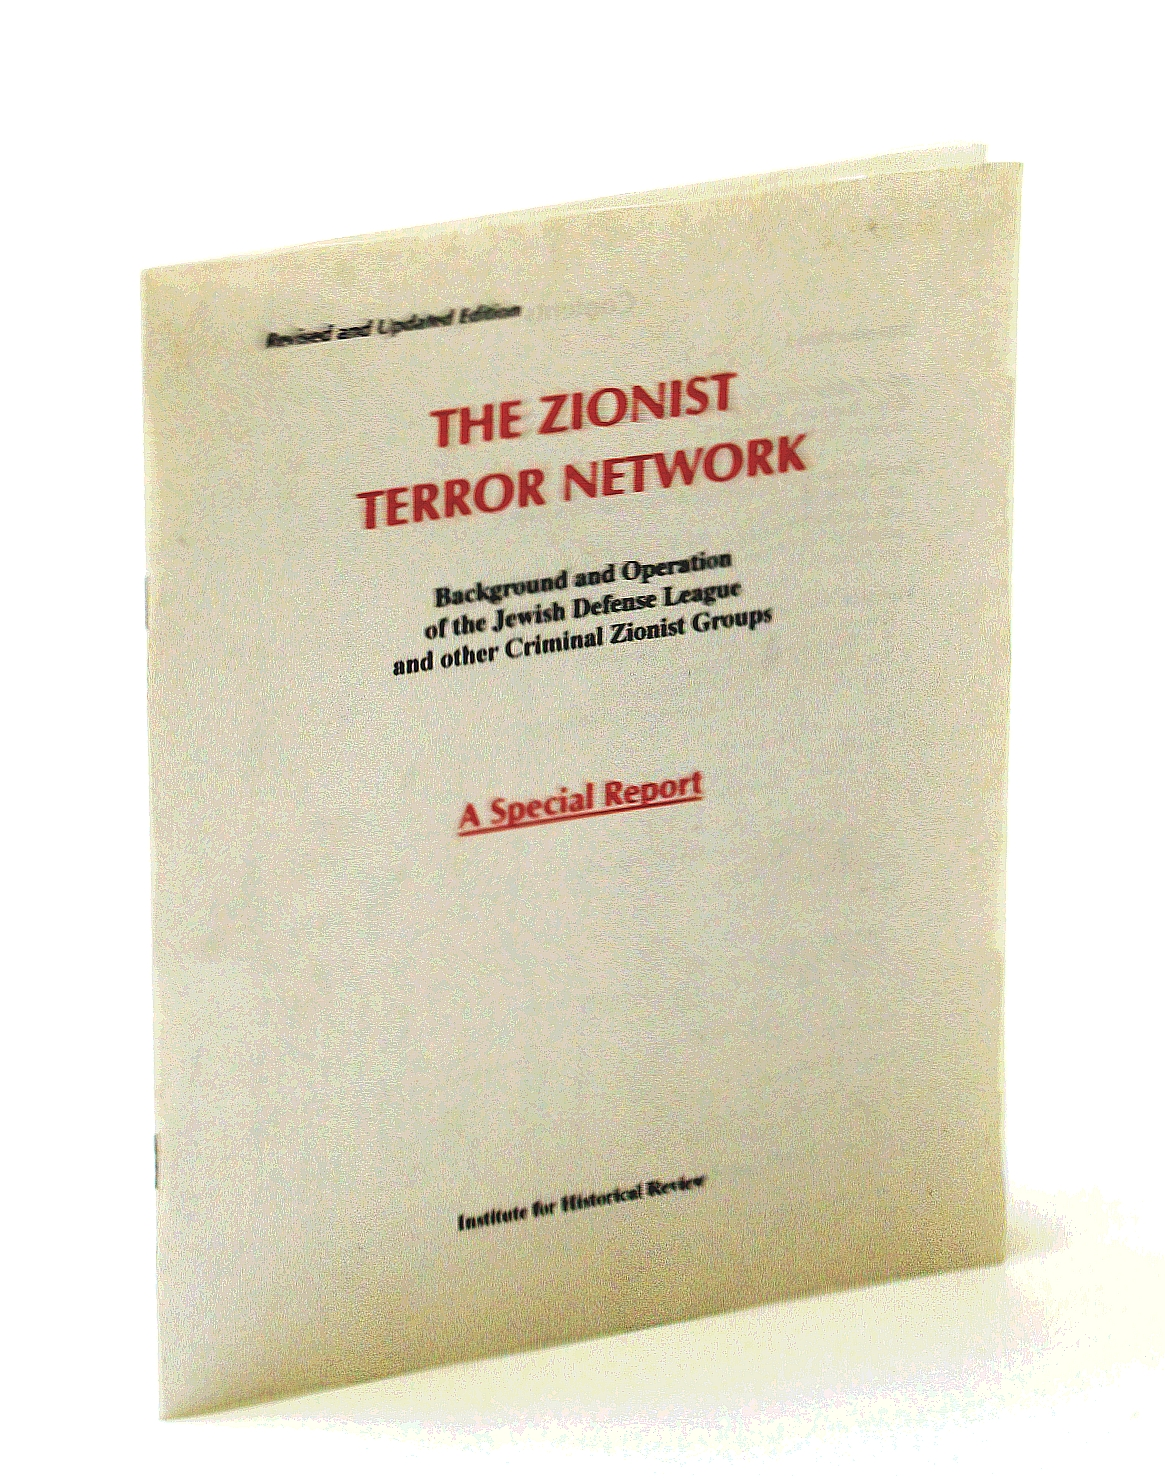 Image for The Zionist Terror Network, Background and Operation of the Jewish Defense League and Other Criminal Zionist Groups